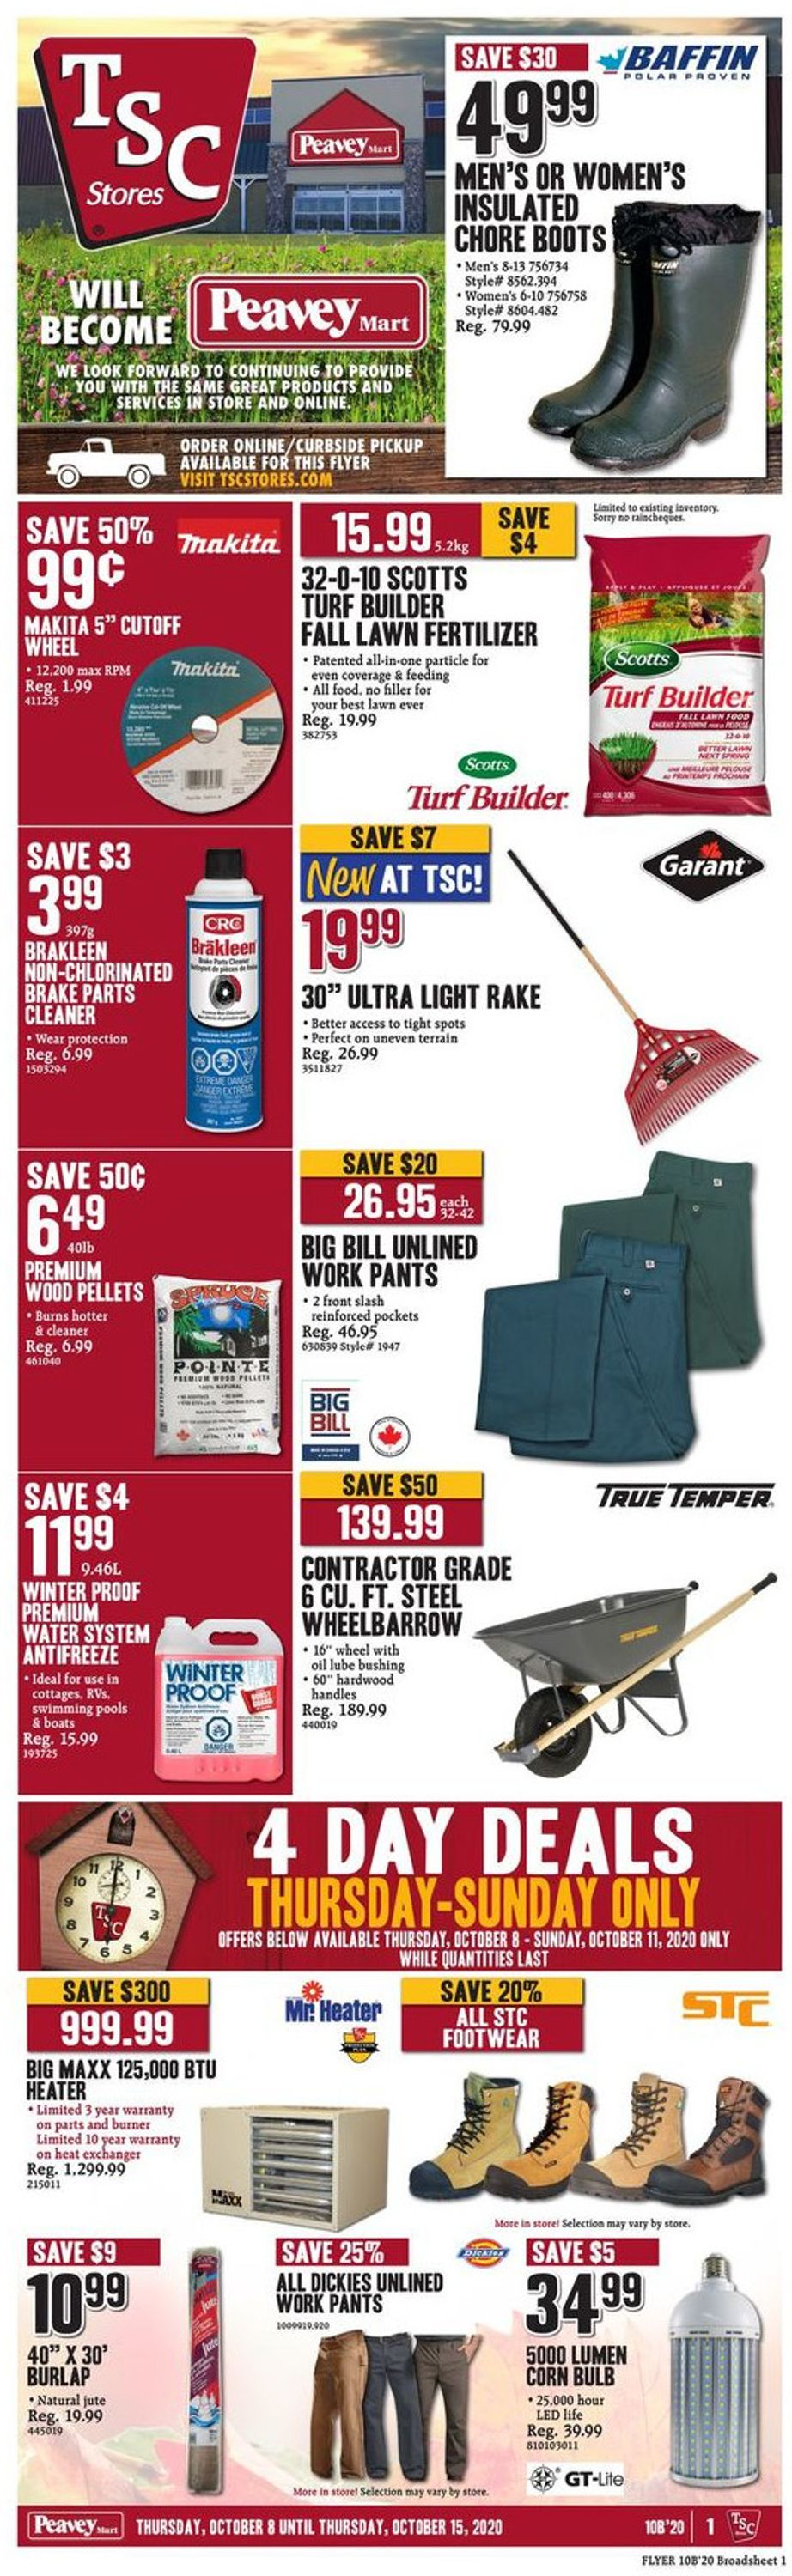 Tsc Stores Flyer 10 08 10 15 2020 Page 14 Rabato